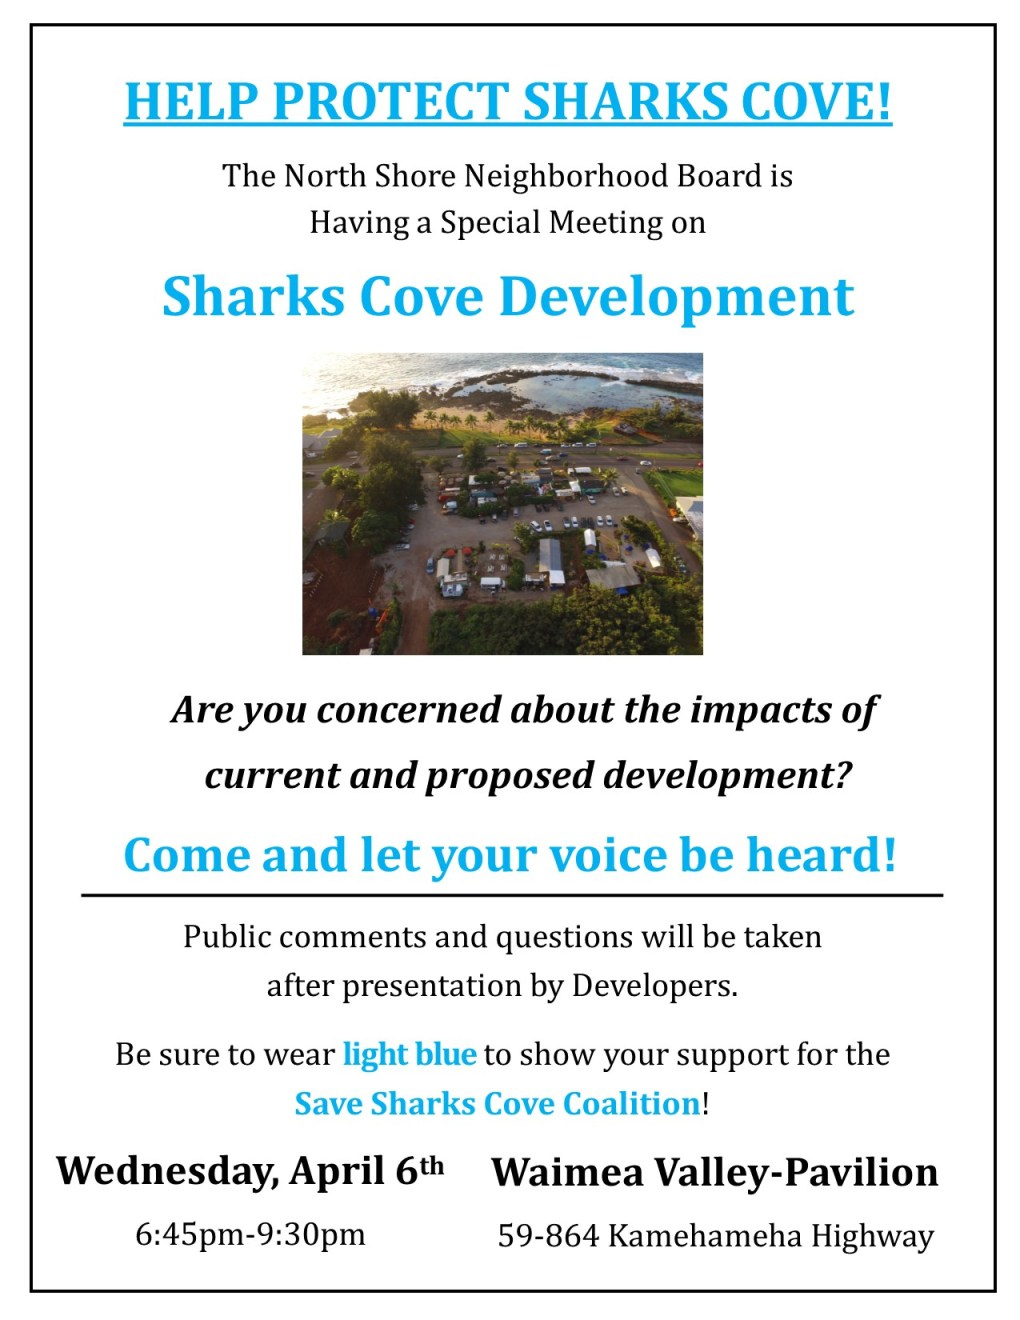 MPW-Sharks Cove NSNB Flyer